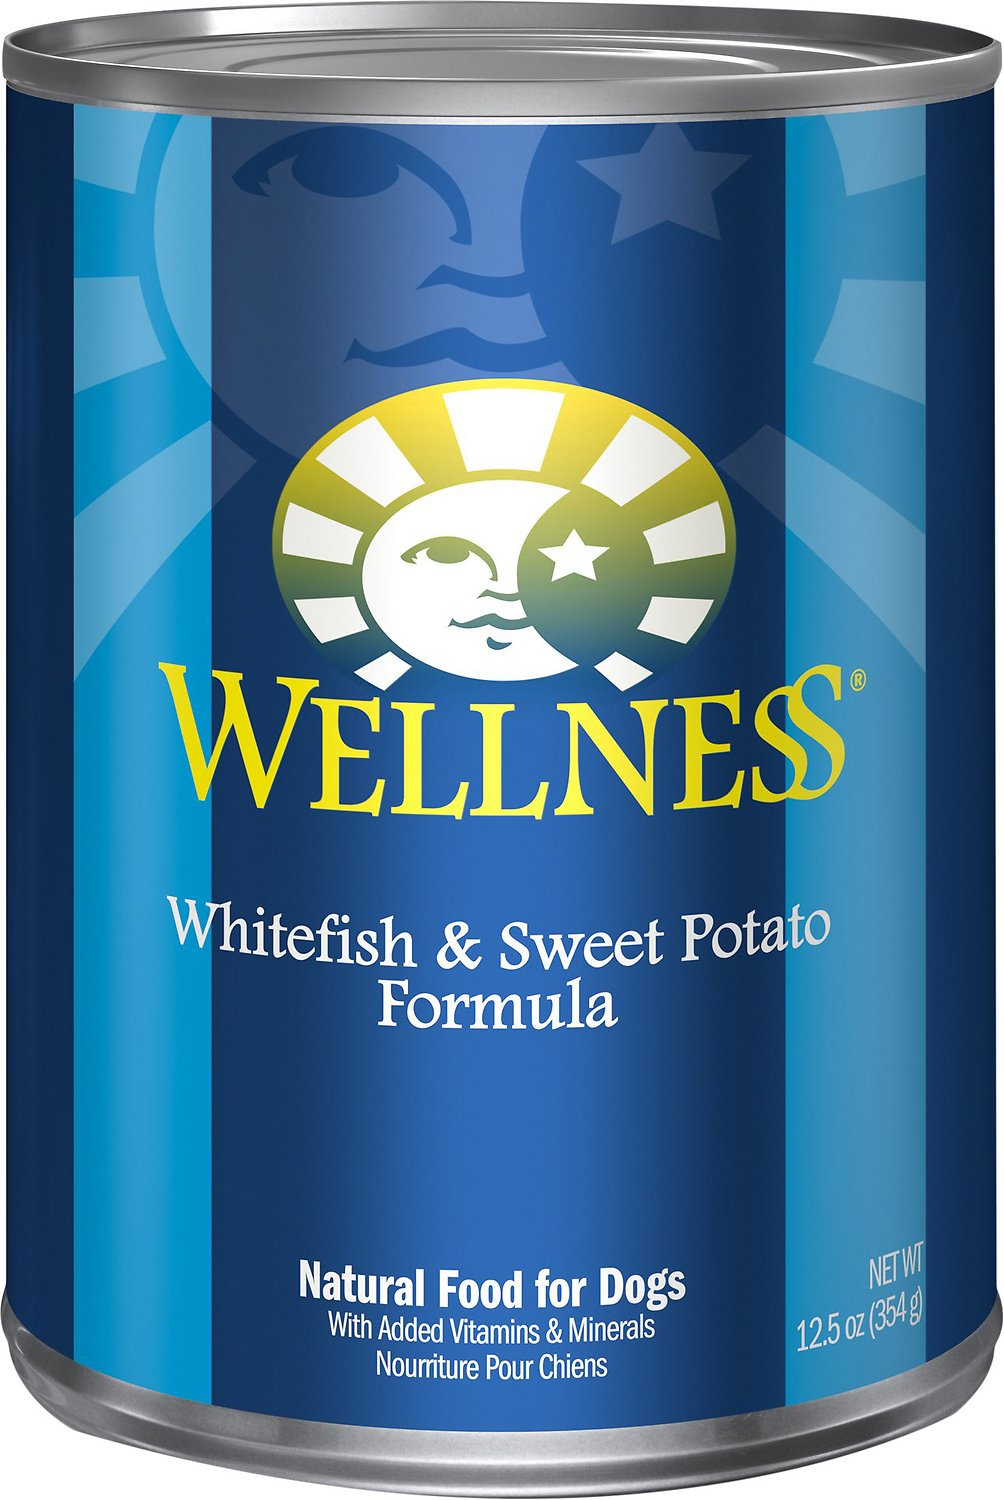 Wellness Complete Health Whitefish & Sweet Potato Formula Canned Dog Food, 12.5-oz